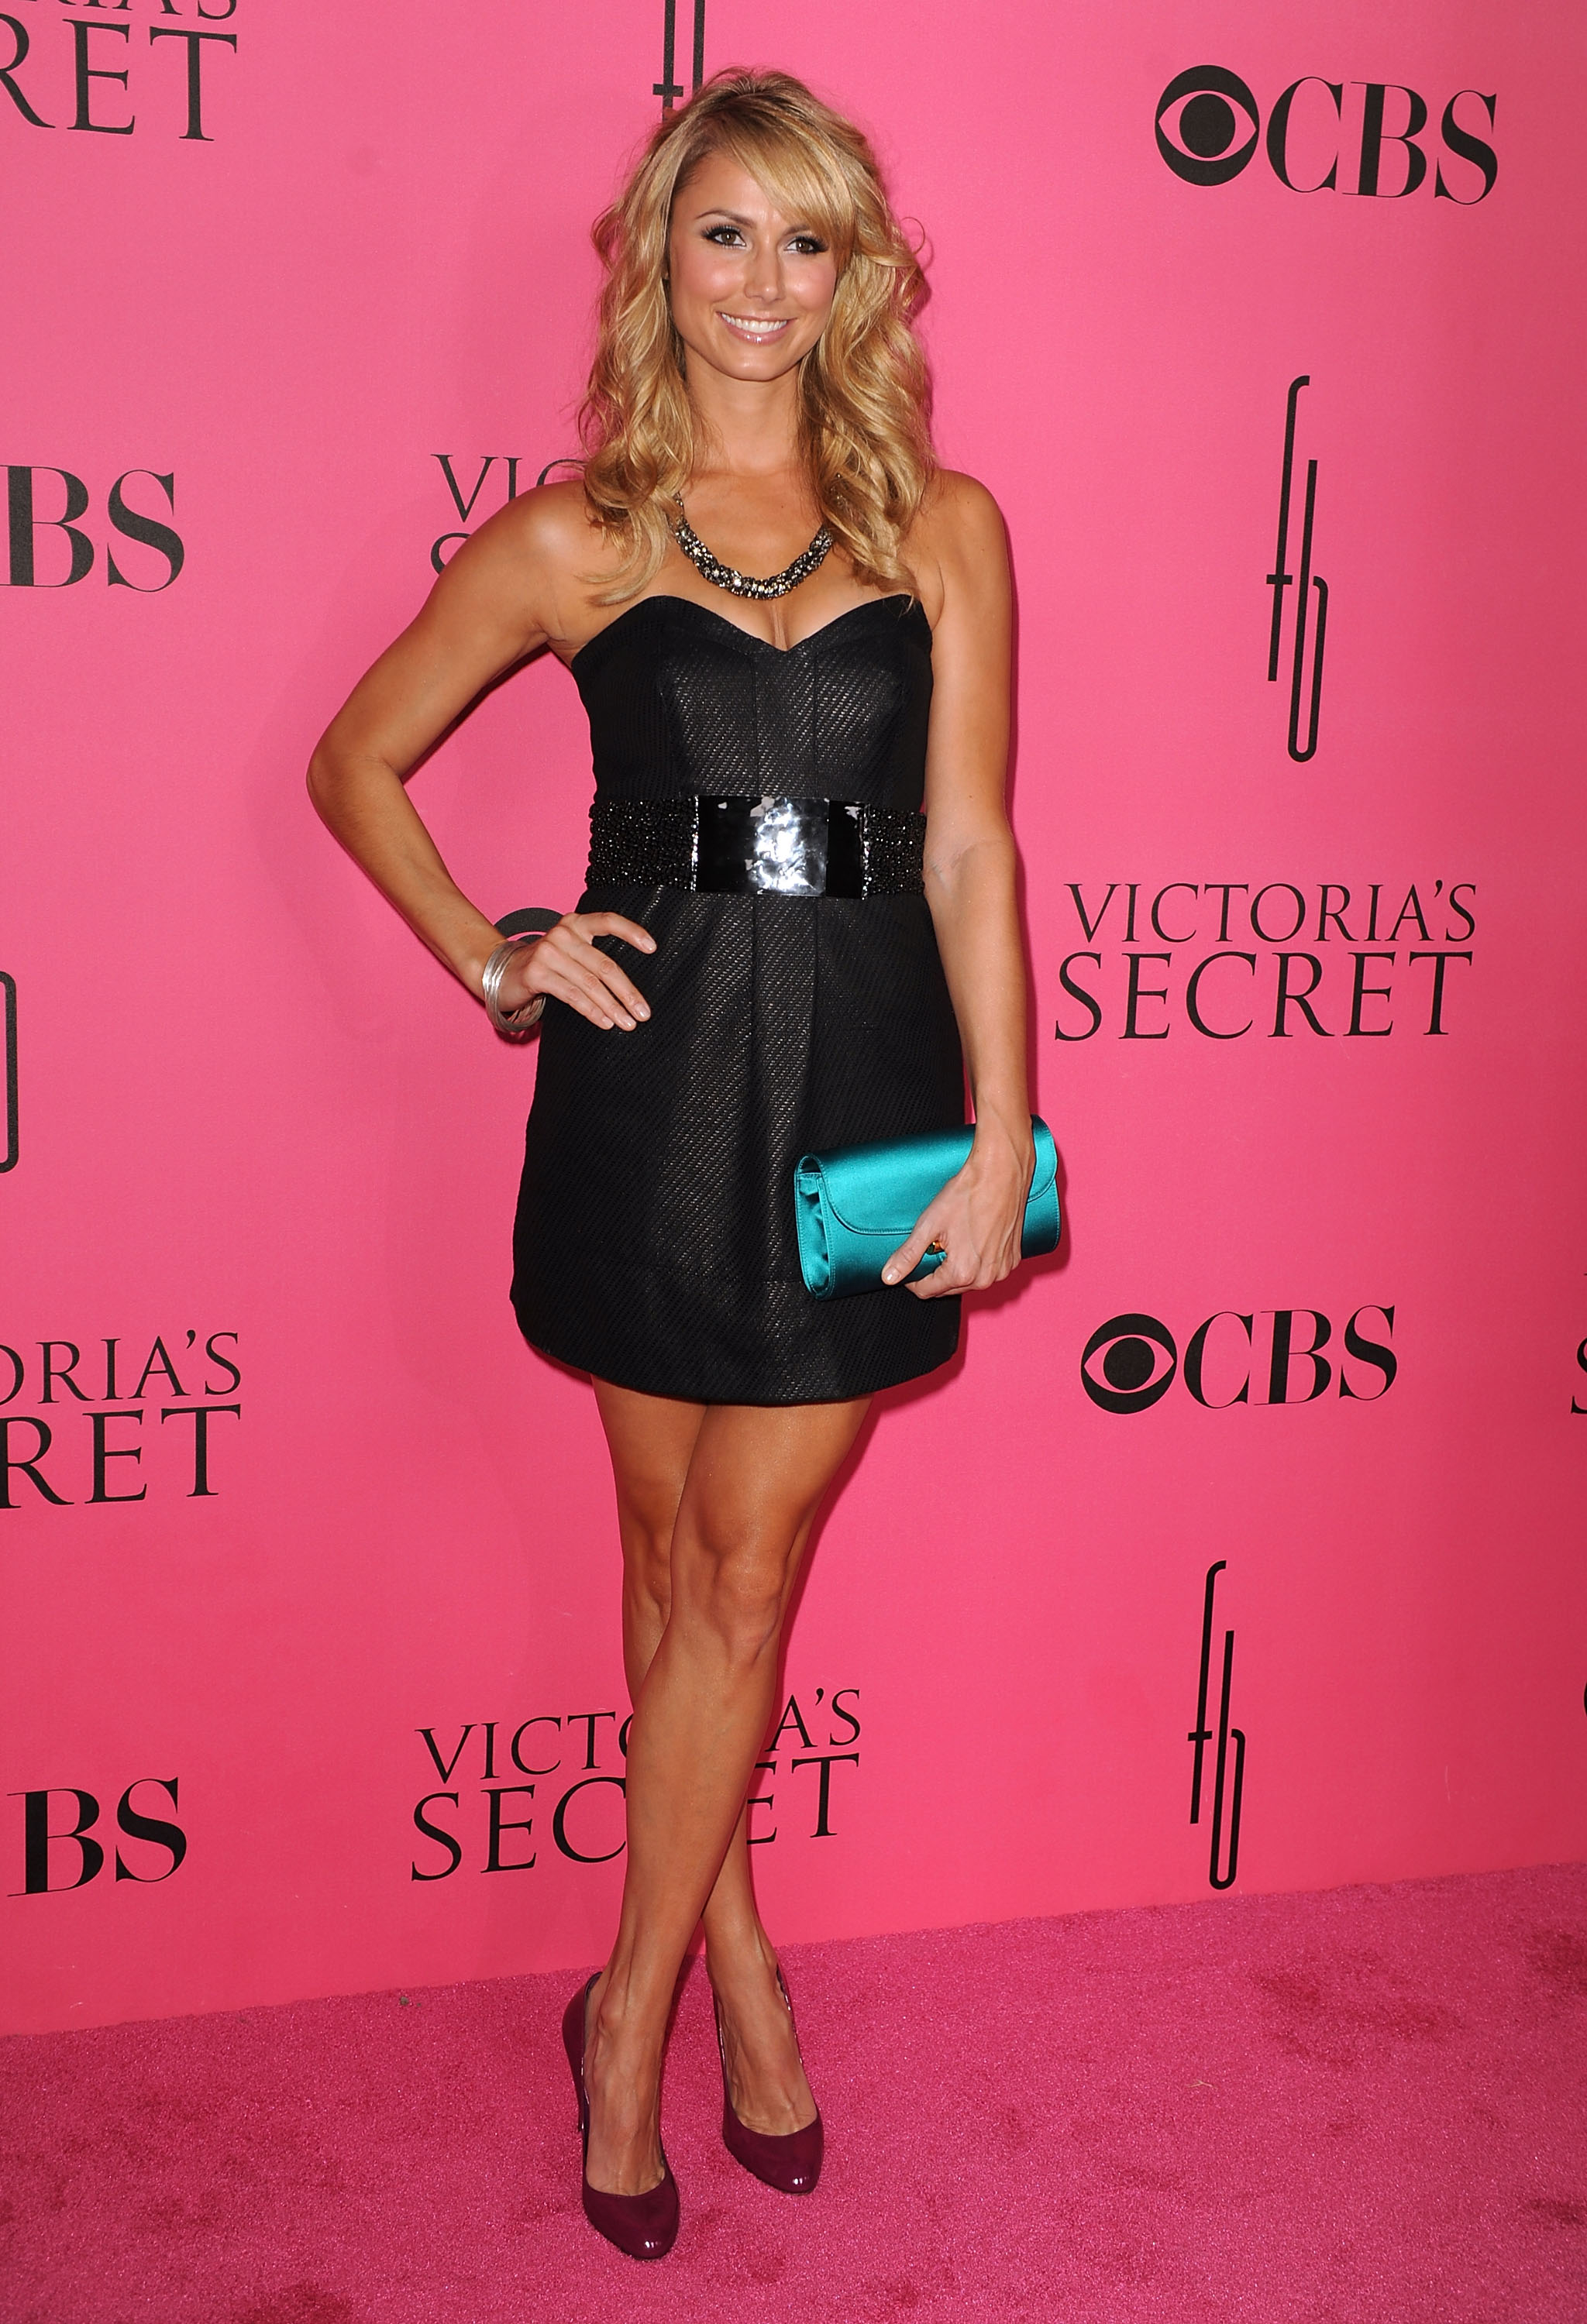 36916_Celebutopia-Stacy_Keibler_arrives_at_the_2008_Victoria8s_Secret_Fashion_Show-01_122_972lo.jpg